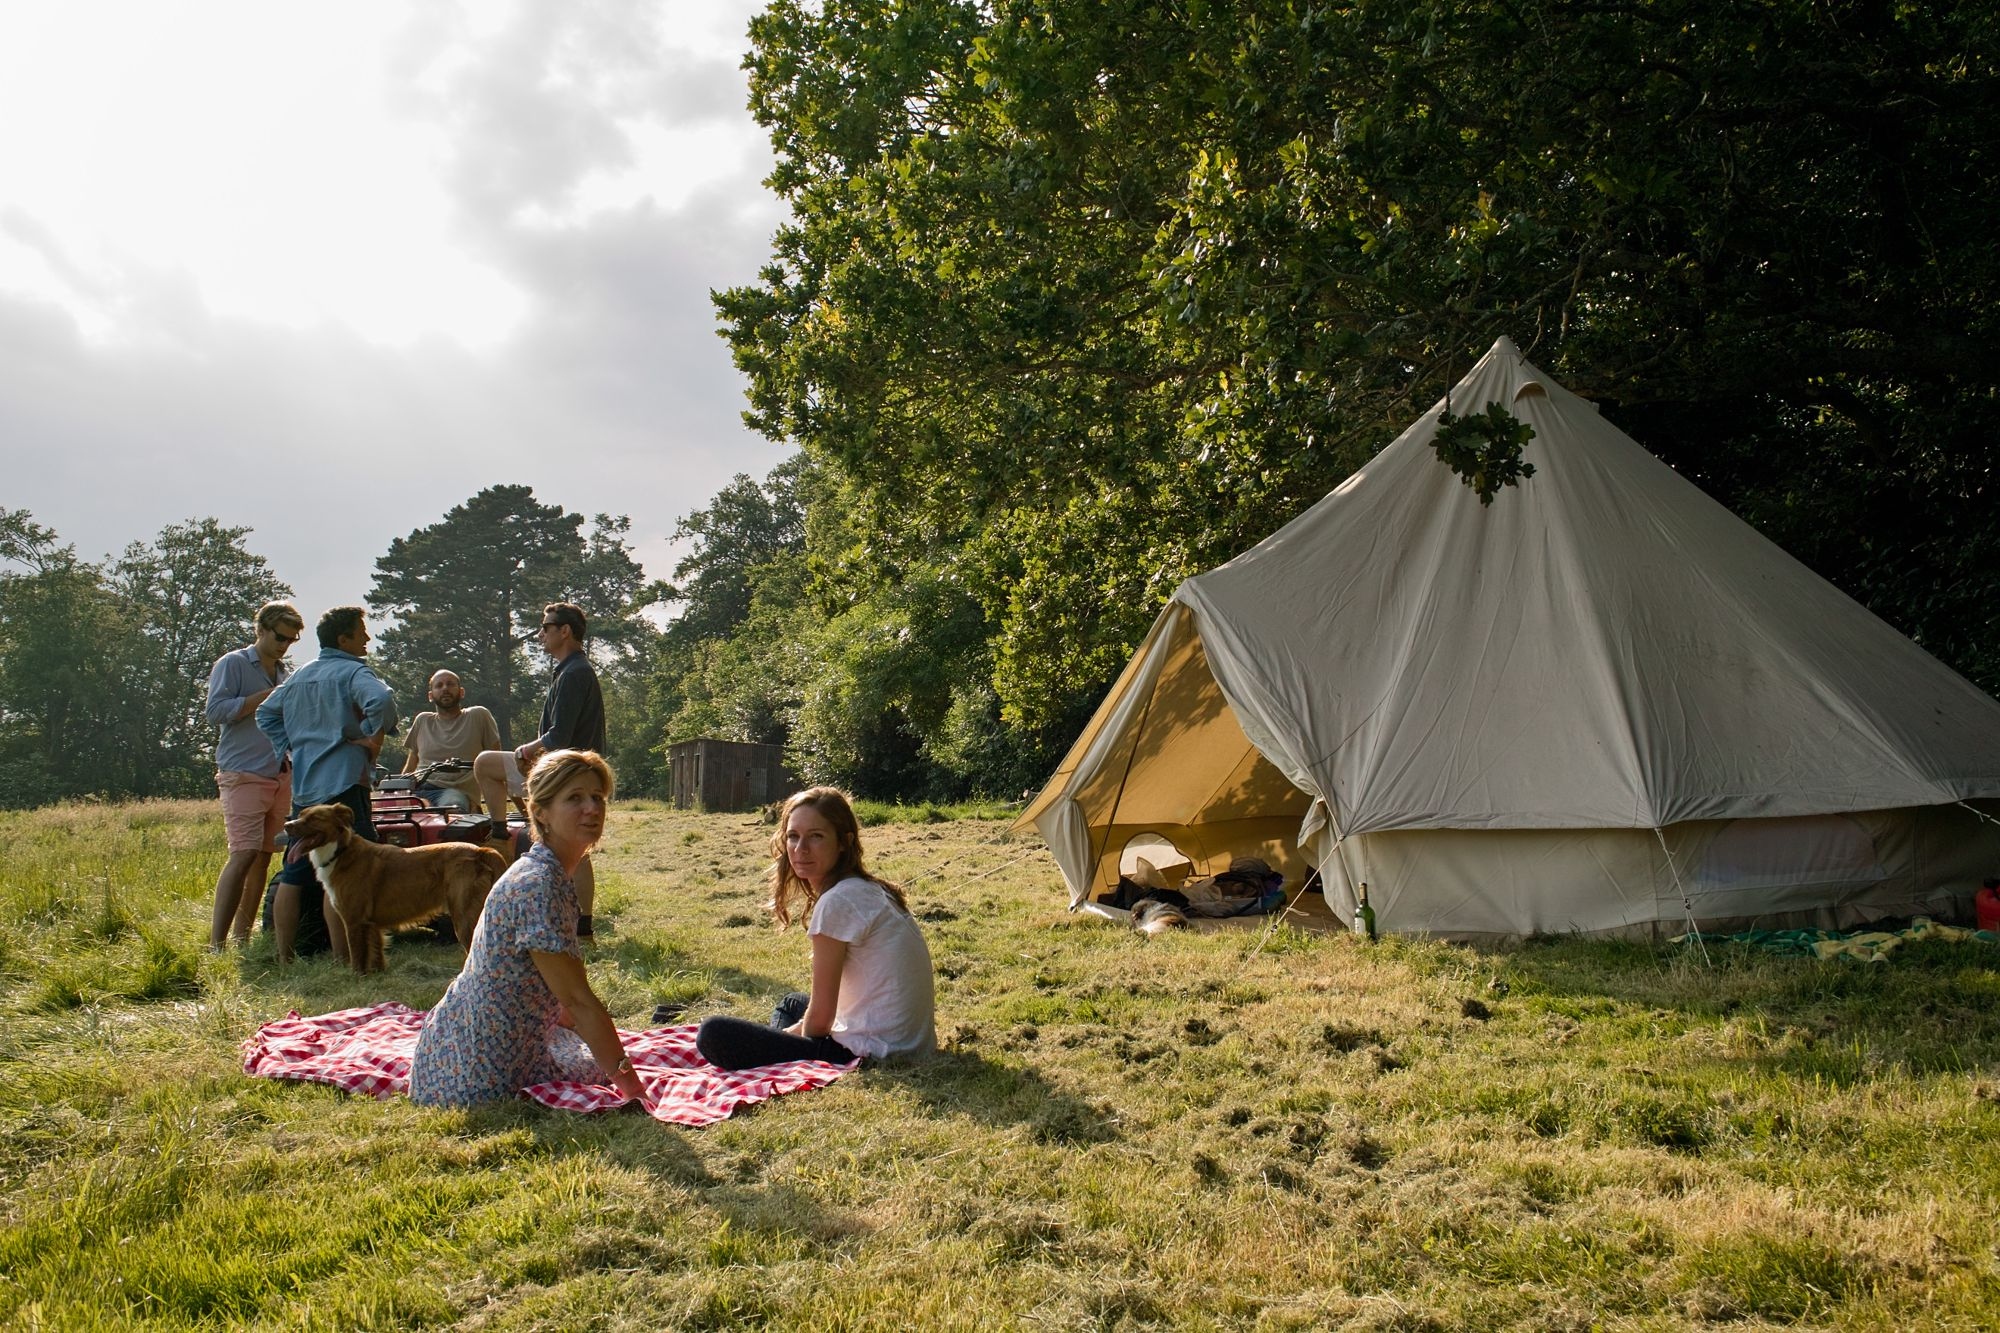 Campsites in Wimborne Minster – Glampingly